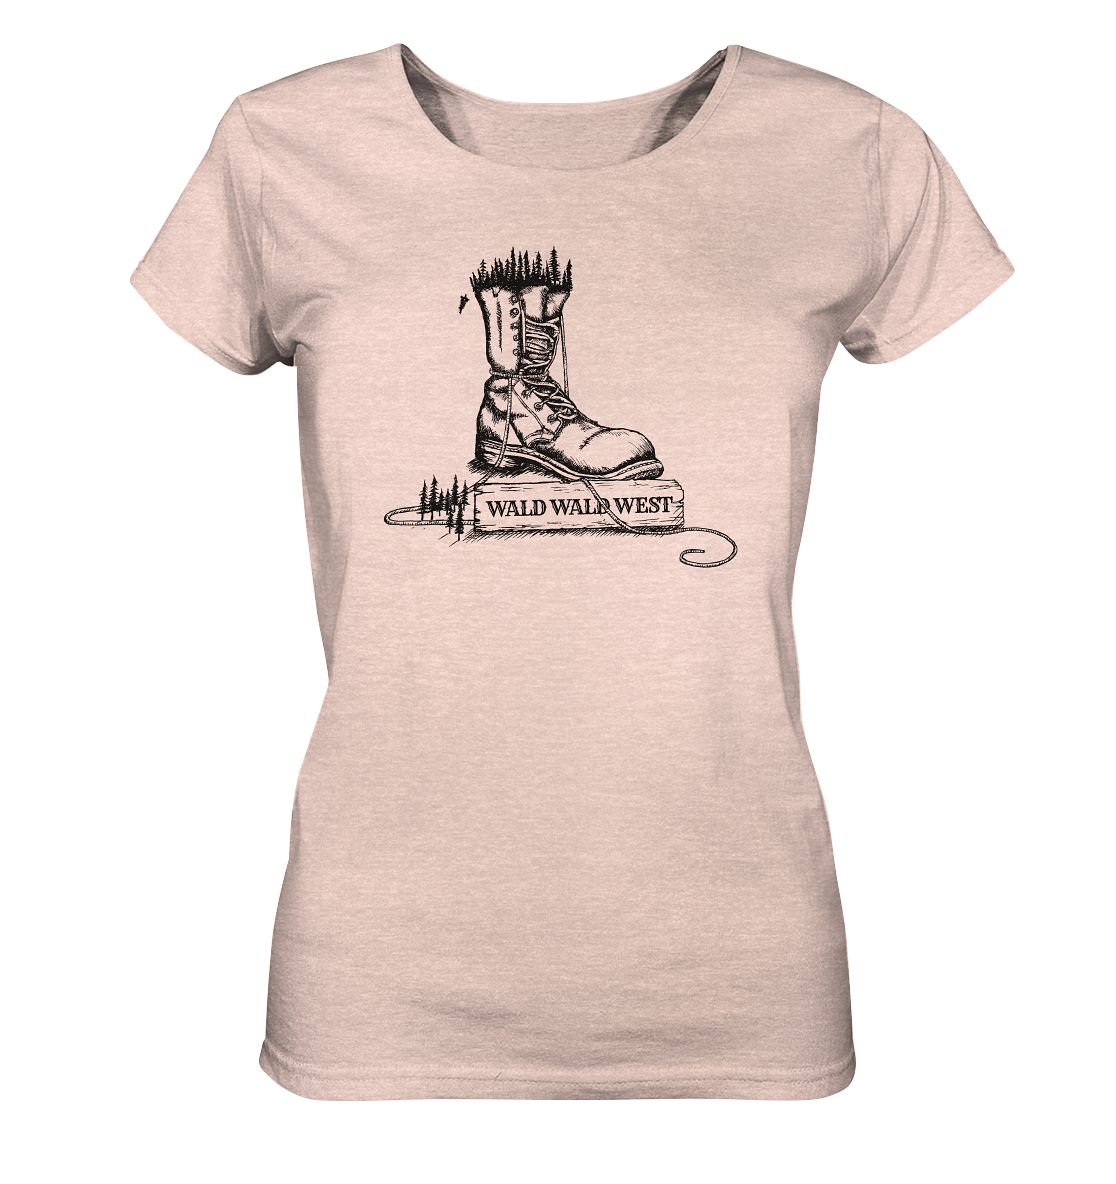 front-ladies-organic-shirt-meliert-ffded6-1116x-1.png